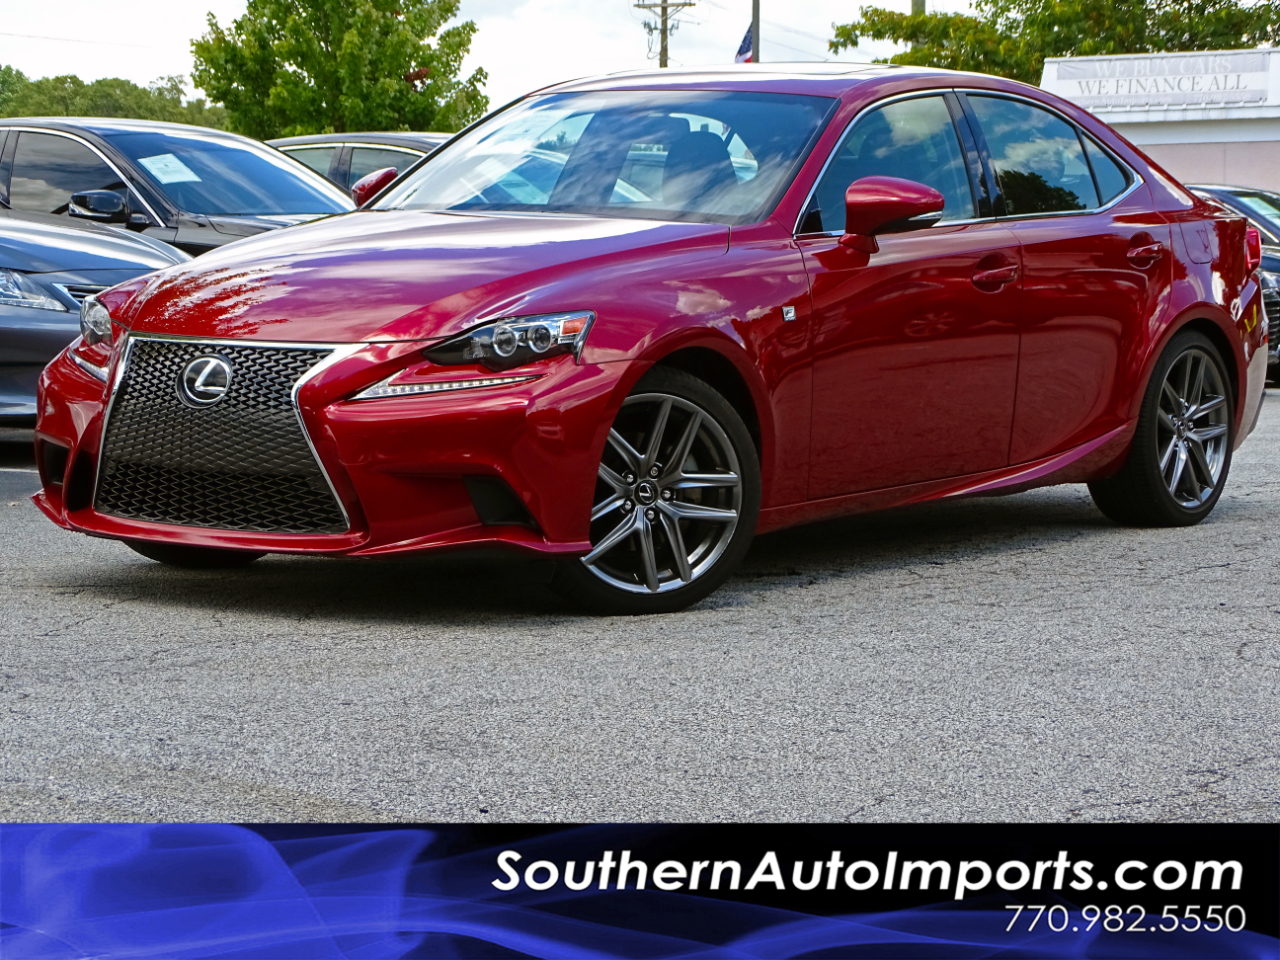 2015 Lexus IS 250 AWD F-SPORT + NAVI PKG 1-OWNER